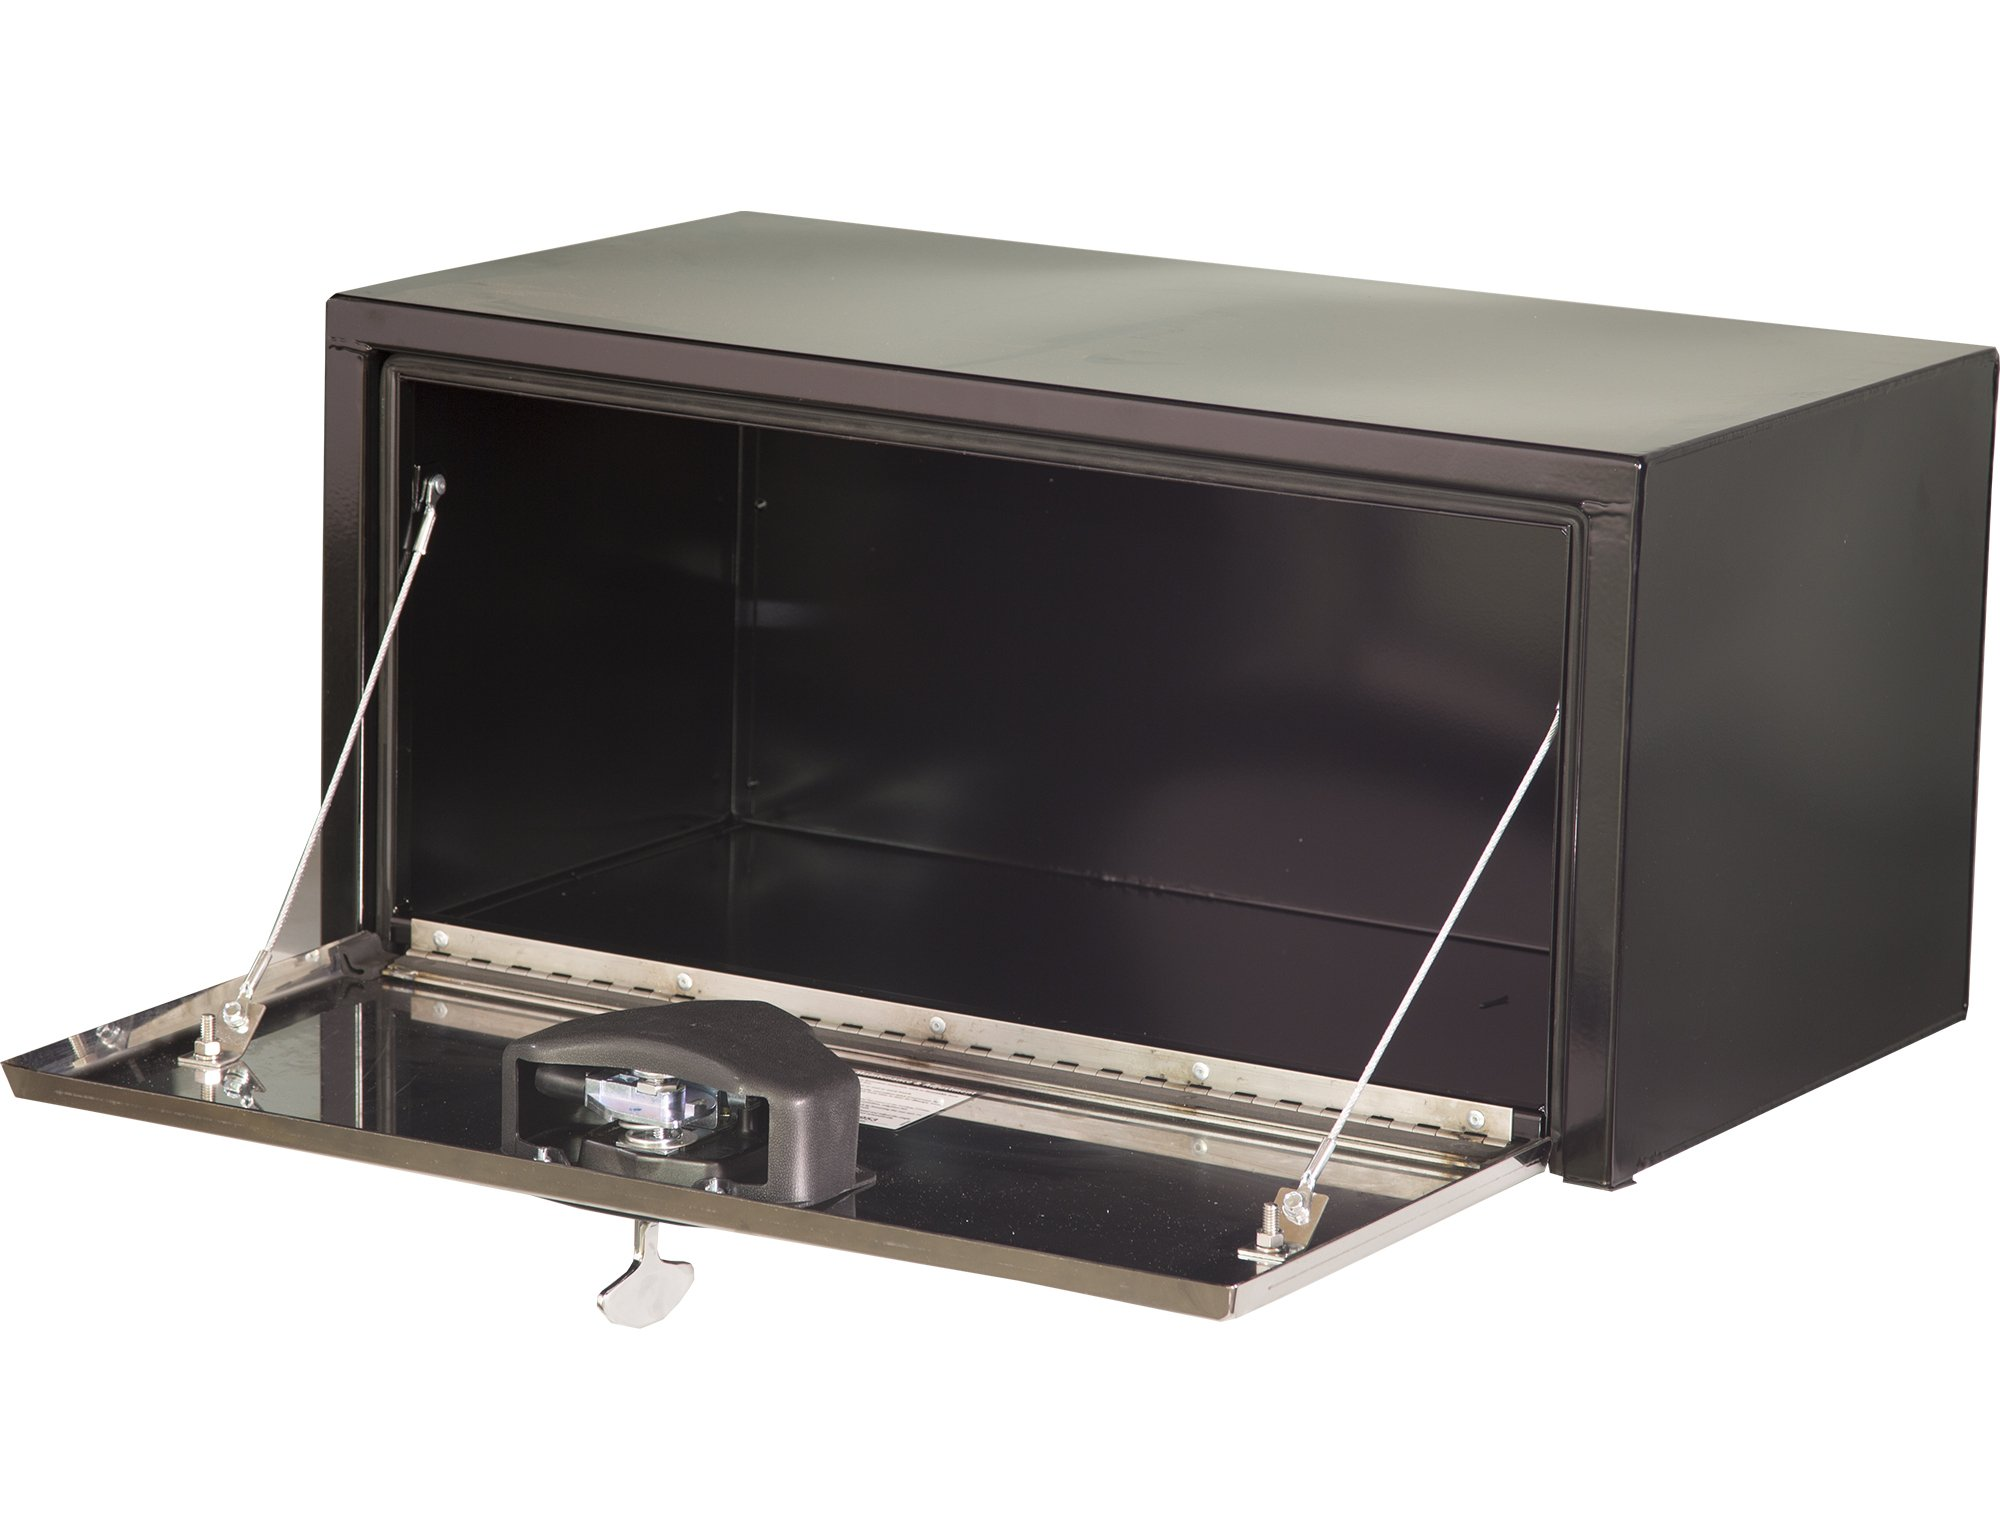 Buyers Products Black Steel Underbody Truck Box w/Stainless Steel Door (24x24x36 Inch) by Buyers Products (Image #2)